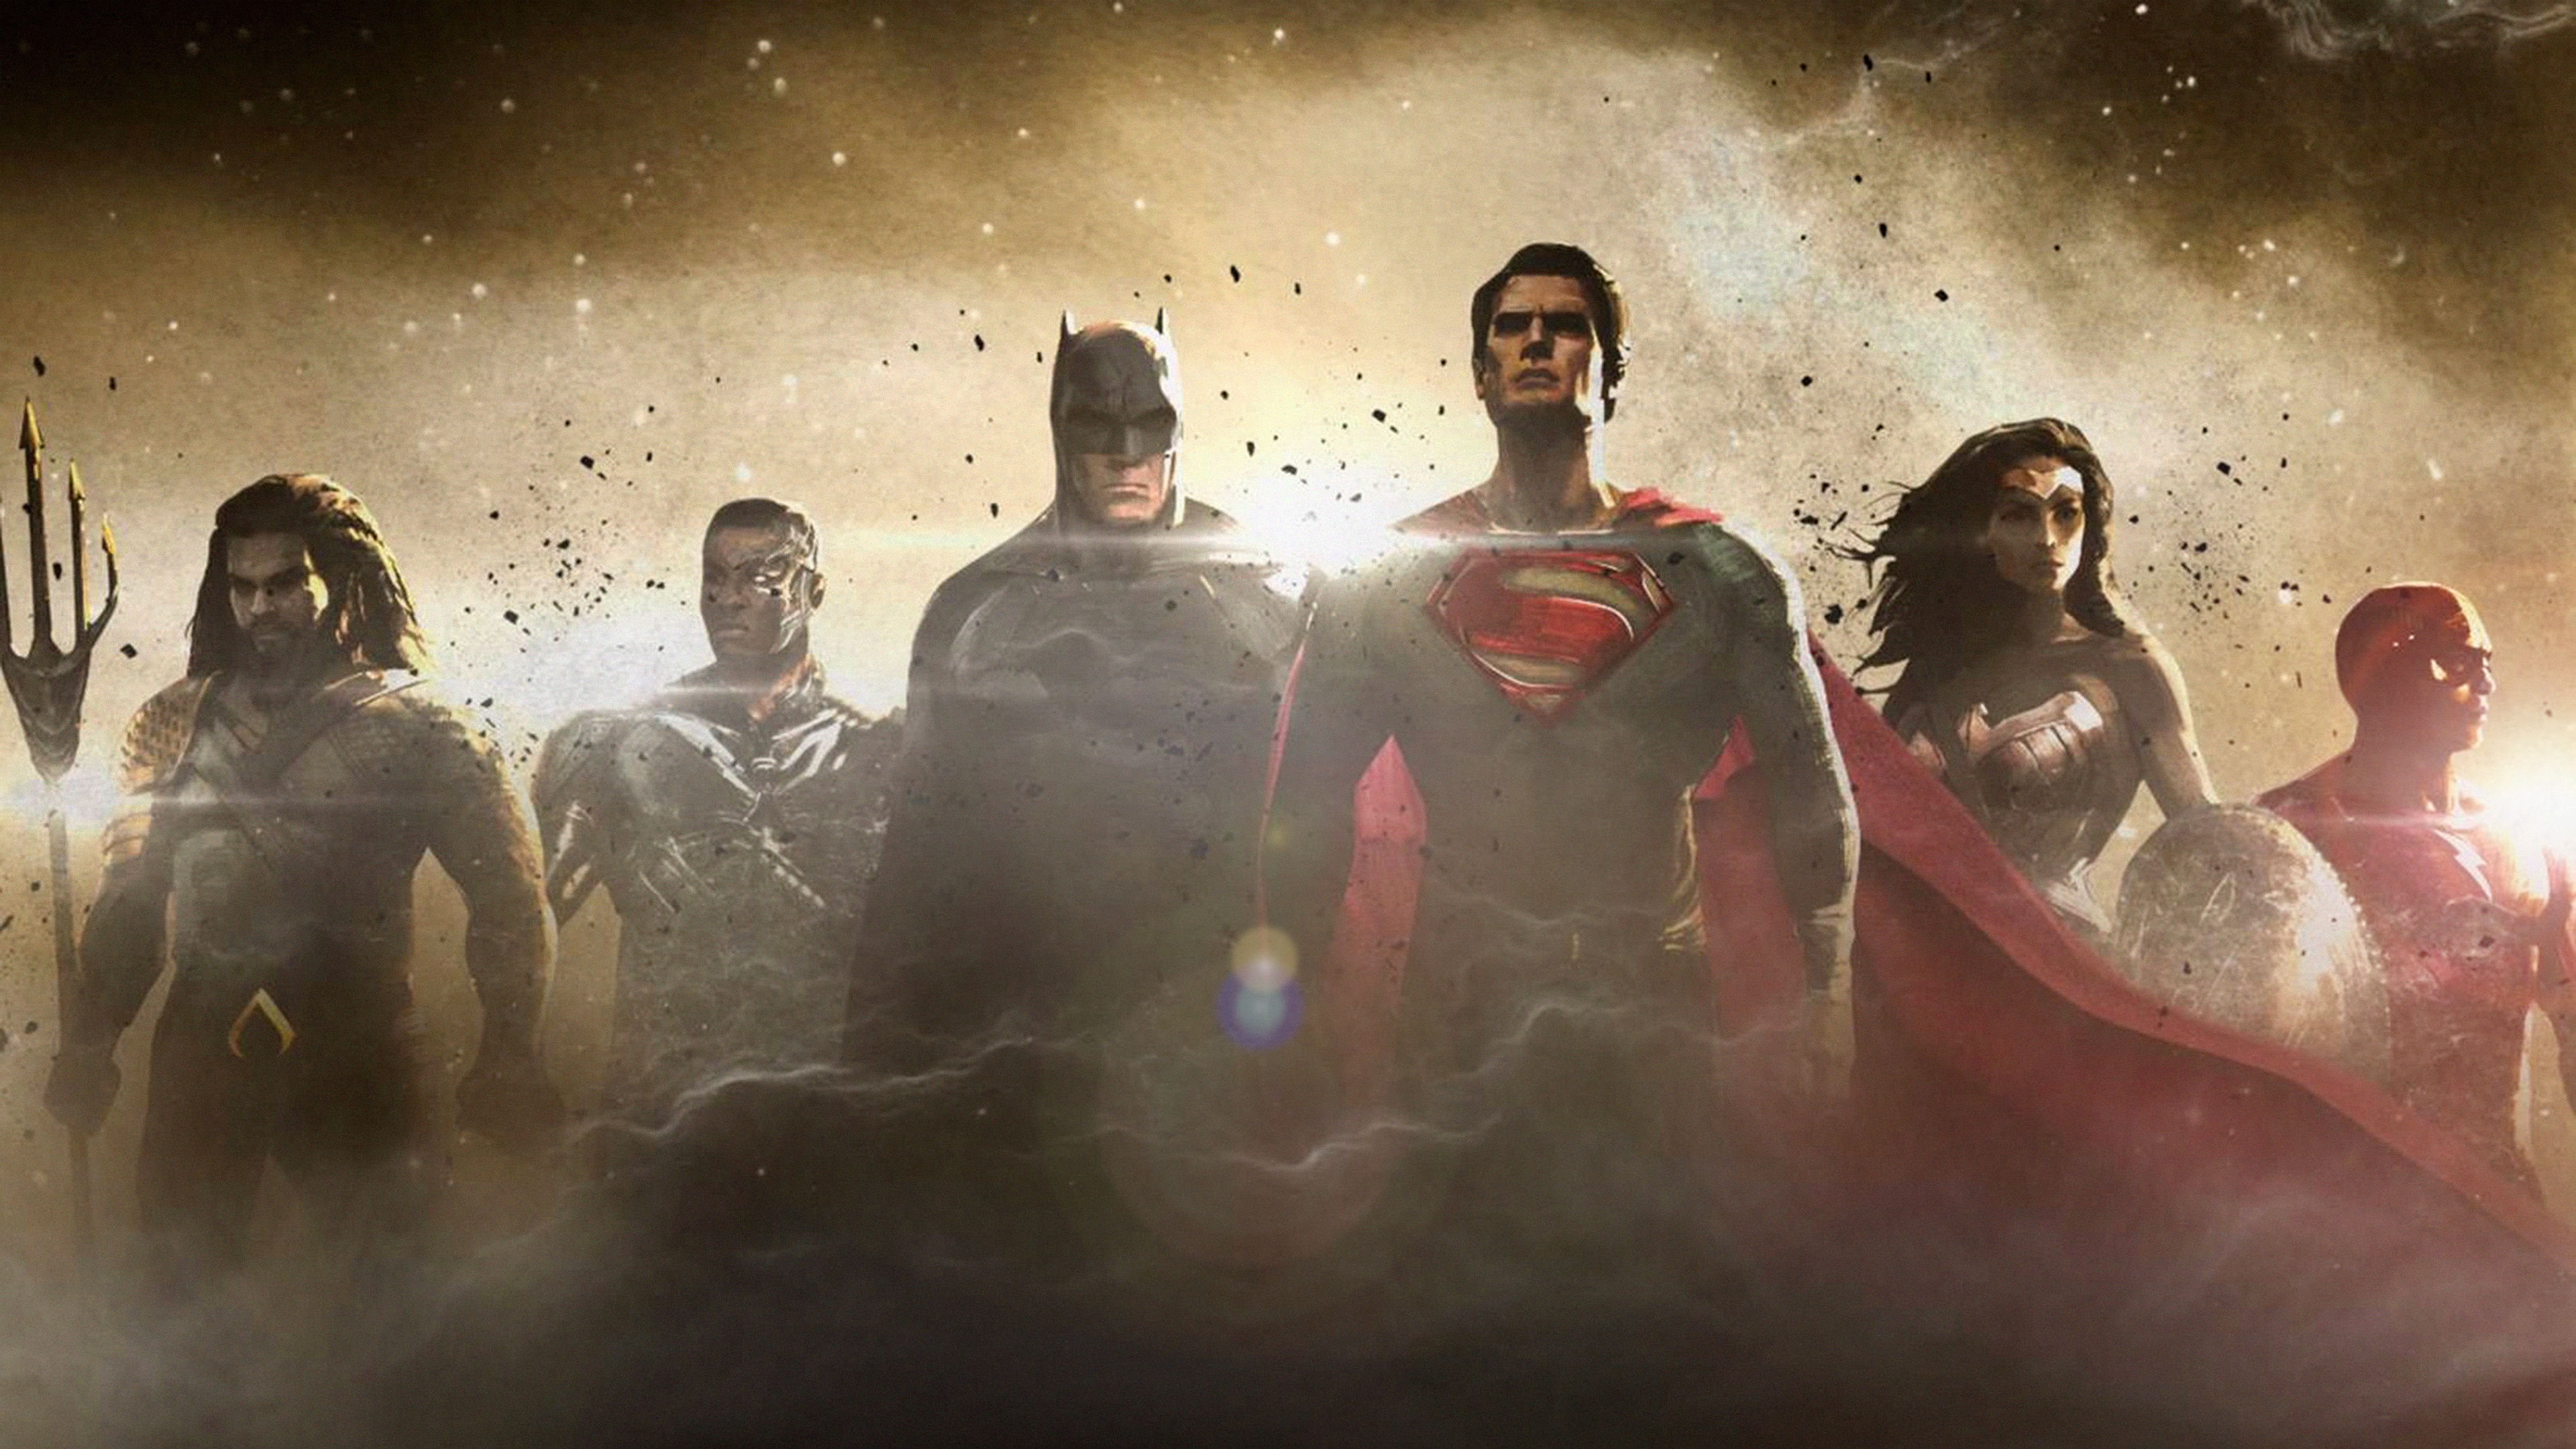 Hd wallpaper justice league - Hd Wallpaper Background Id 763347 3840x2160 Movie Justice League